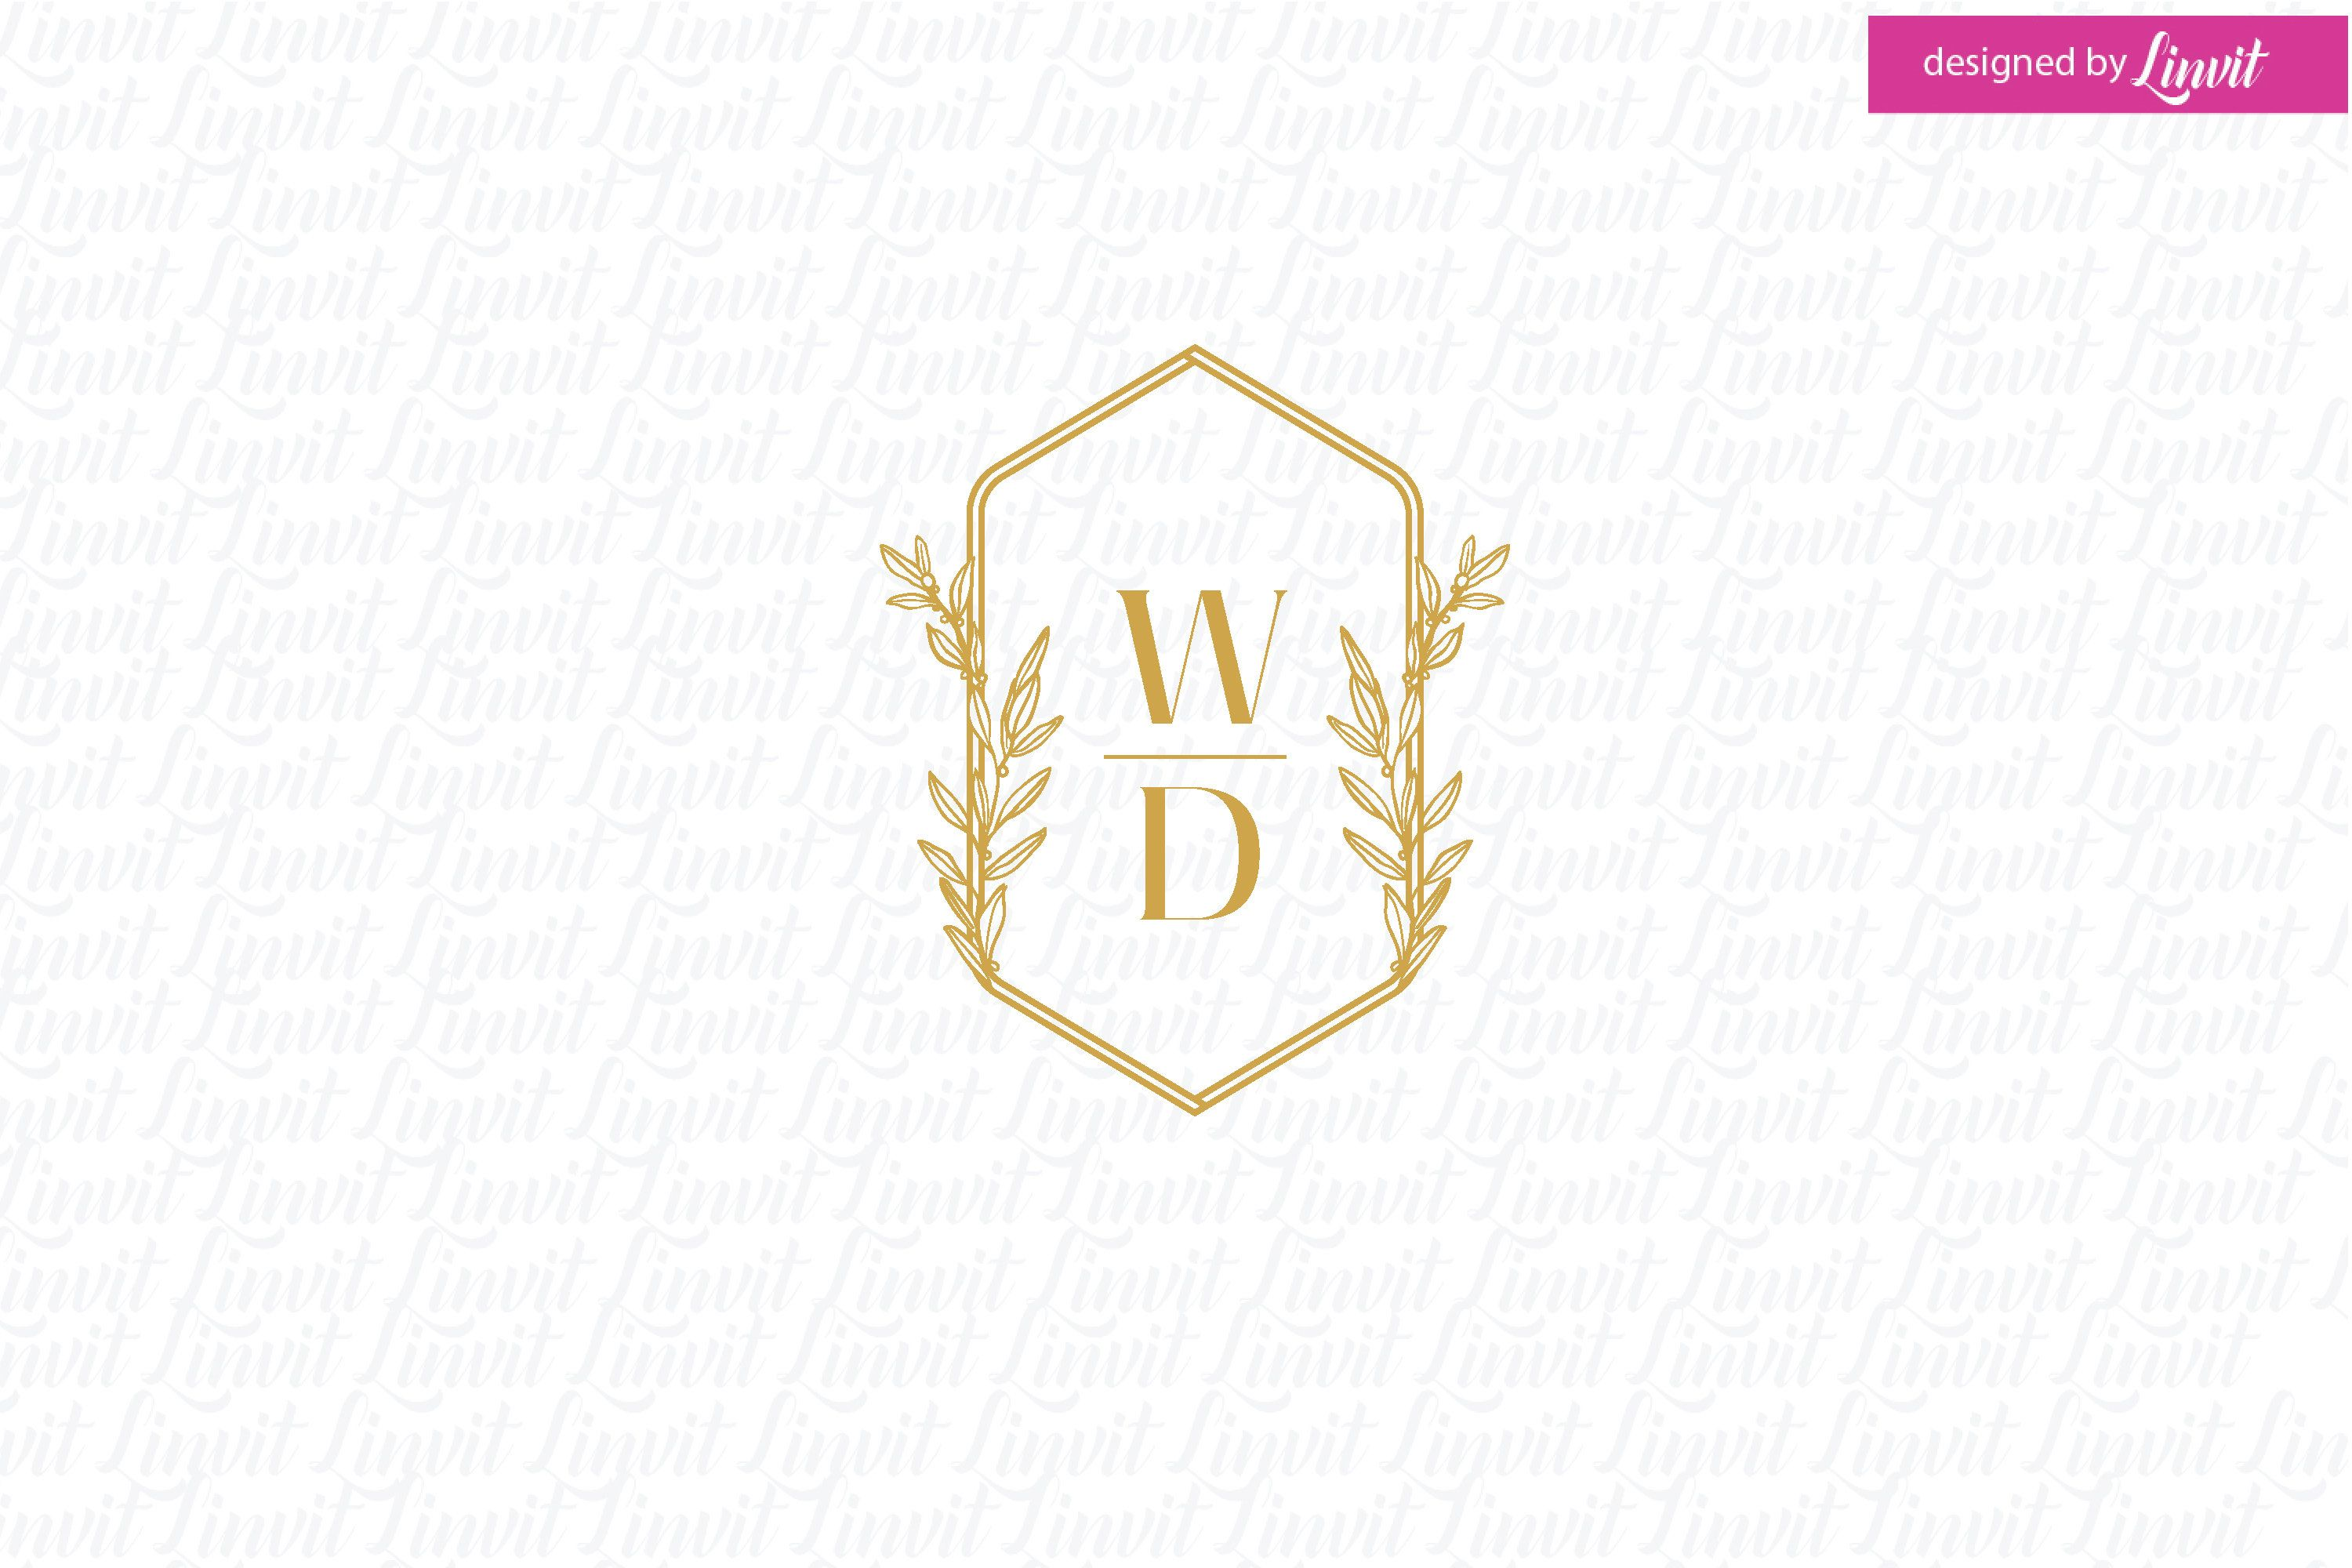 Wedding Logo Wedding Monogram Wedding Monogram Logo Luxury Etsy Wedding Logos Diy Wedding Logo Monogram Wedding